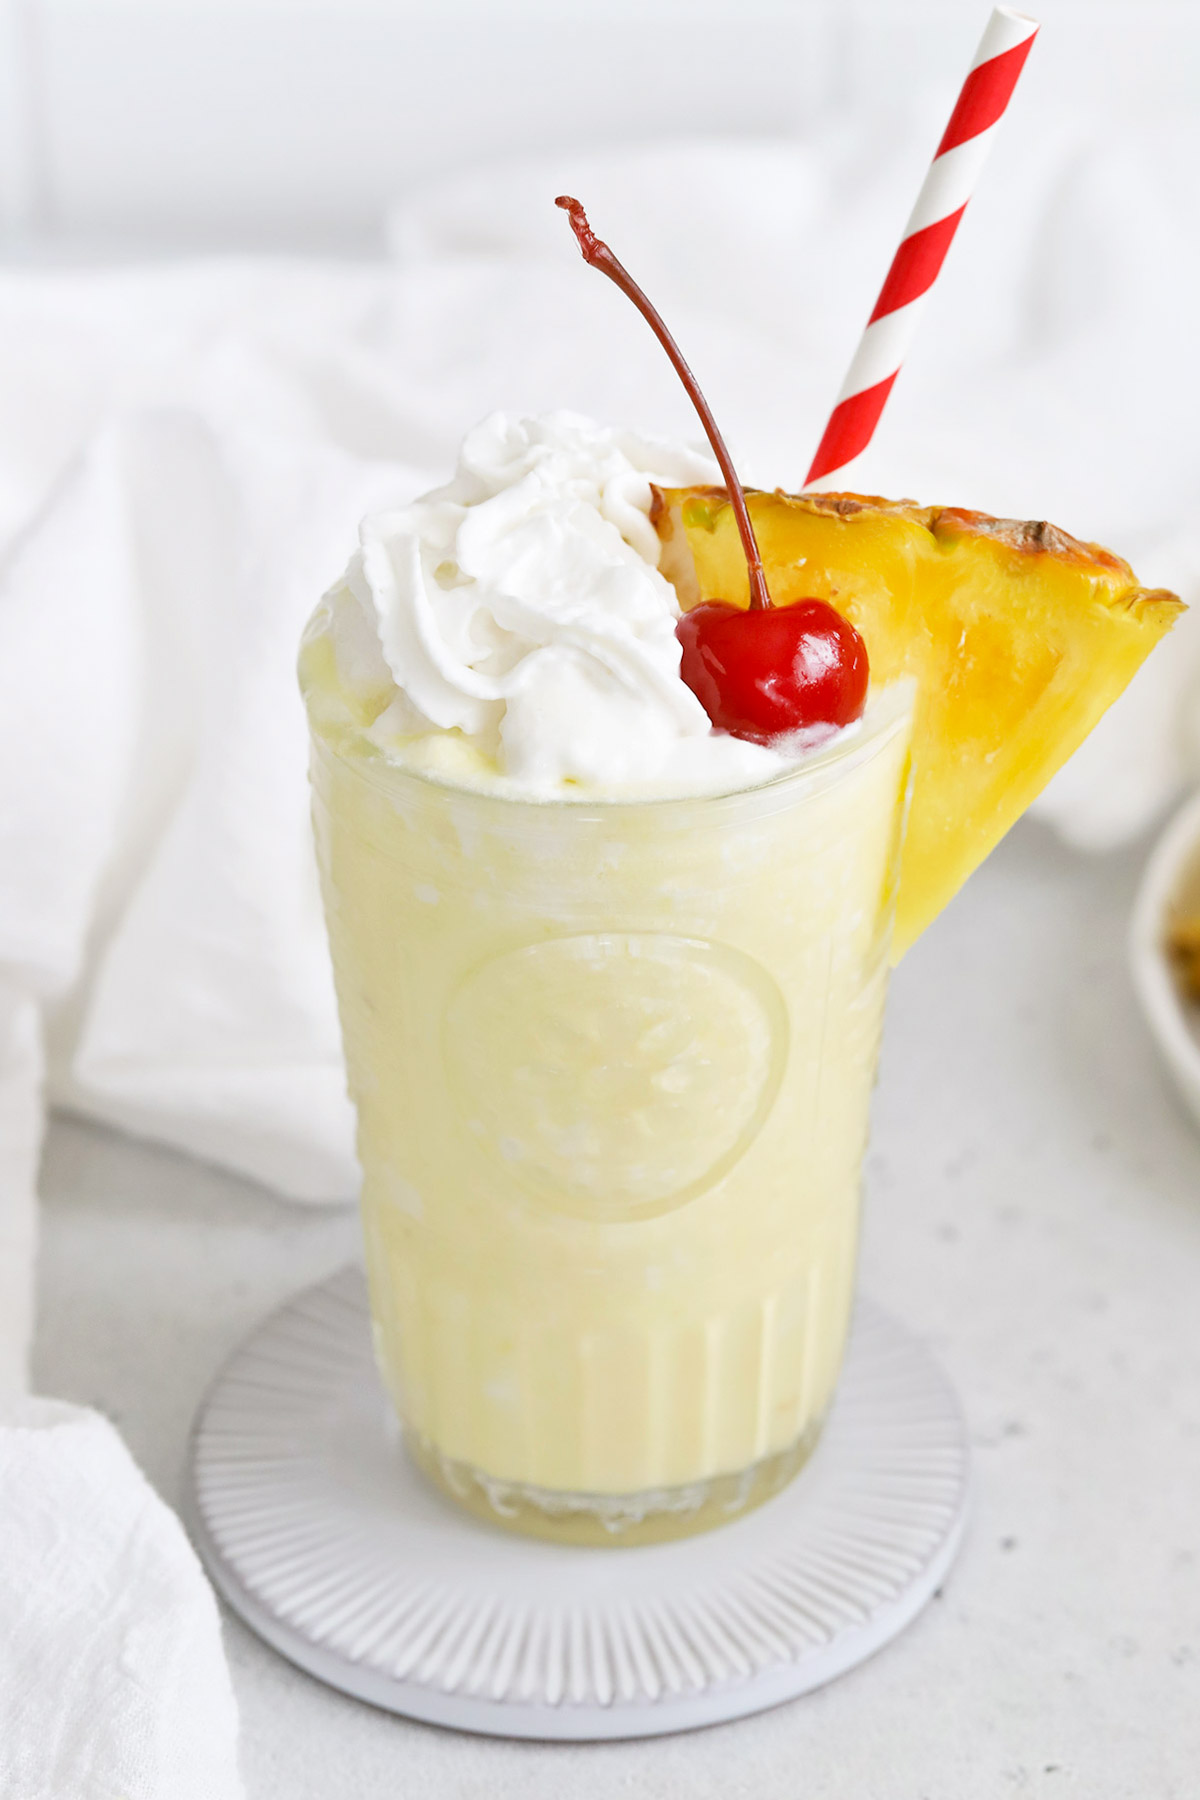 Close up front view of a virgin pina colada with whipped cream and a cherry on a white background